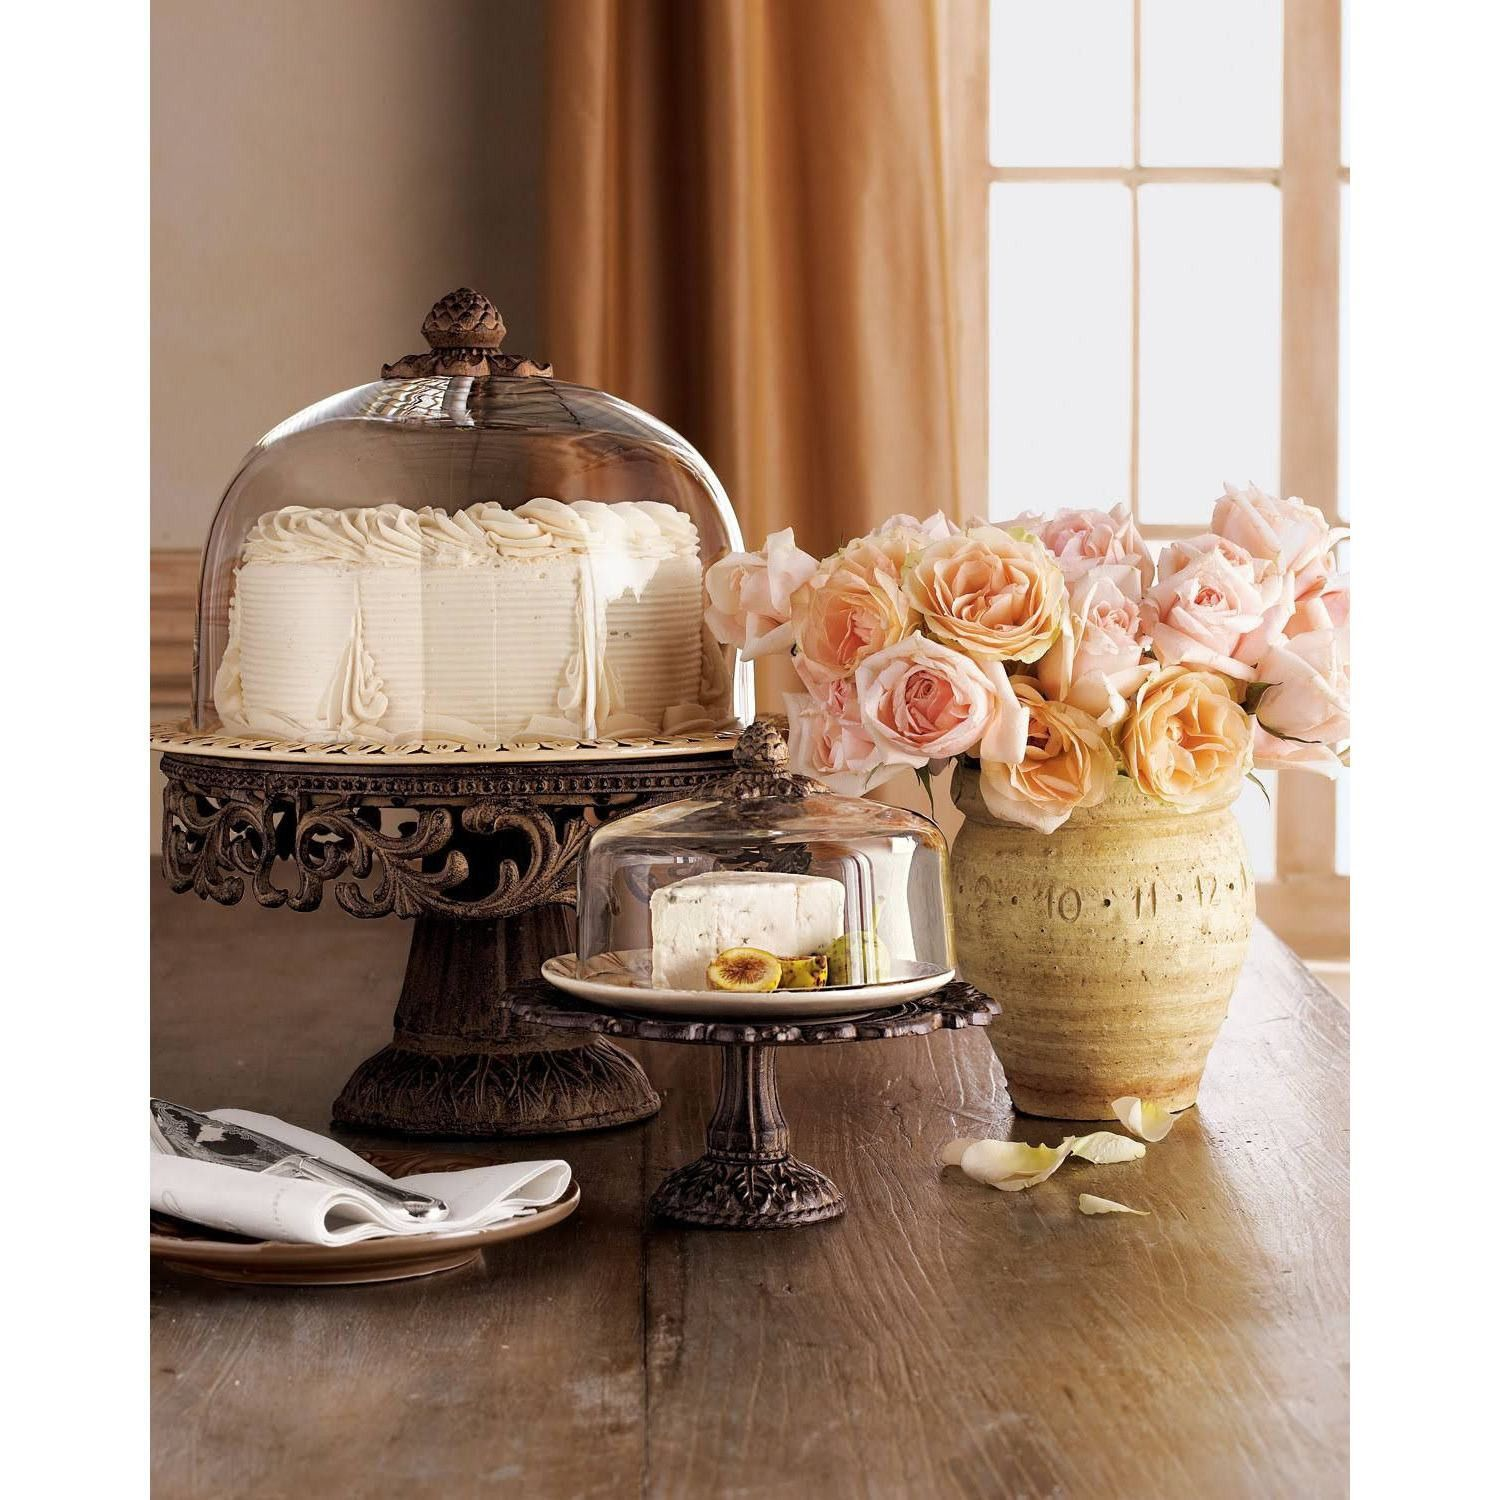 Gg collection acanthus cake pedestal wdome plate